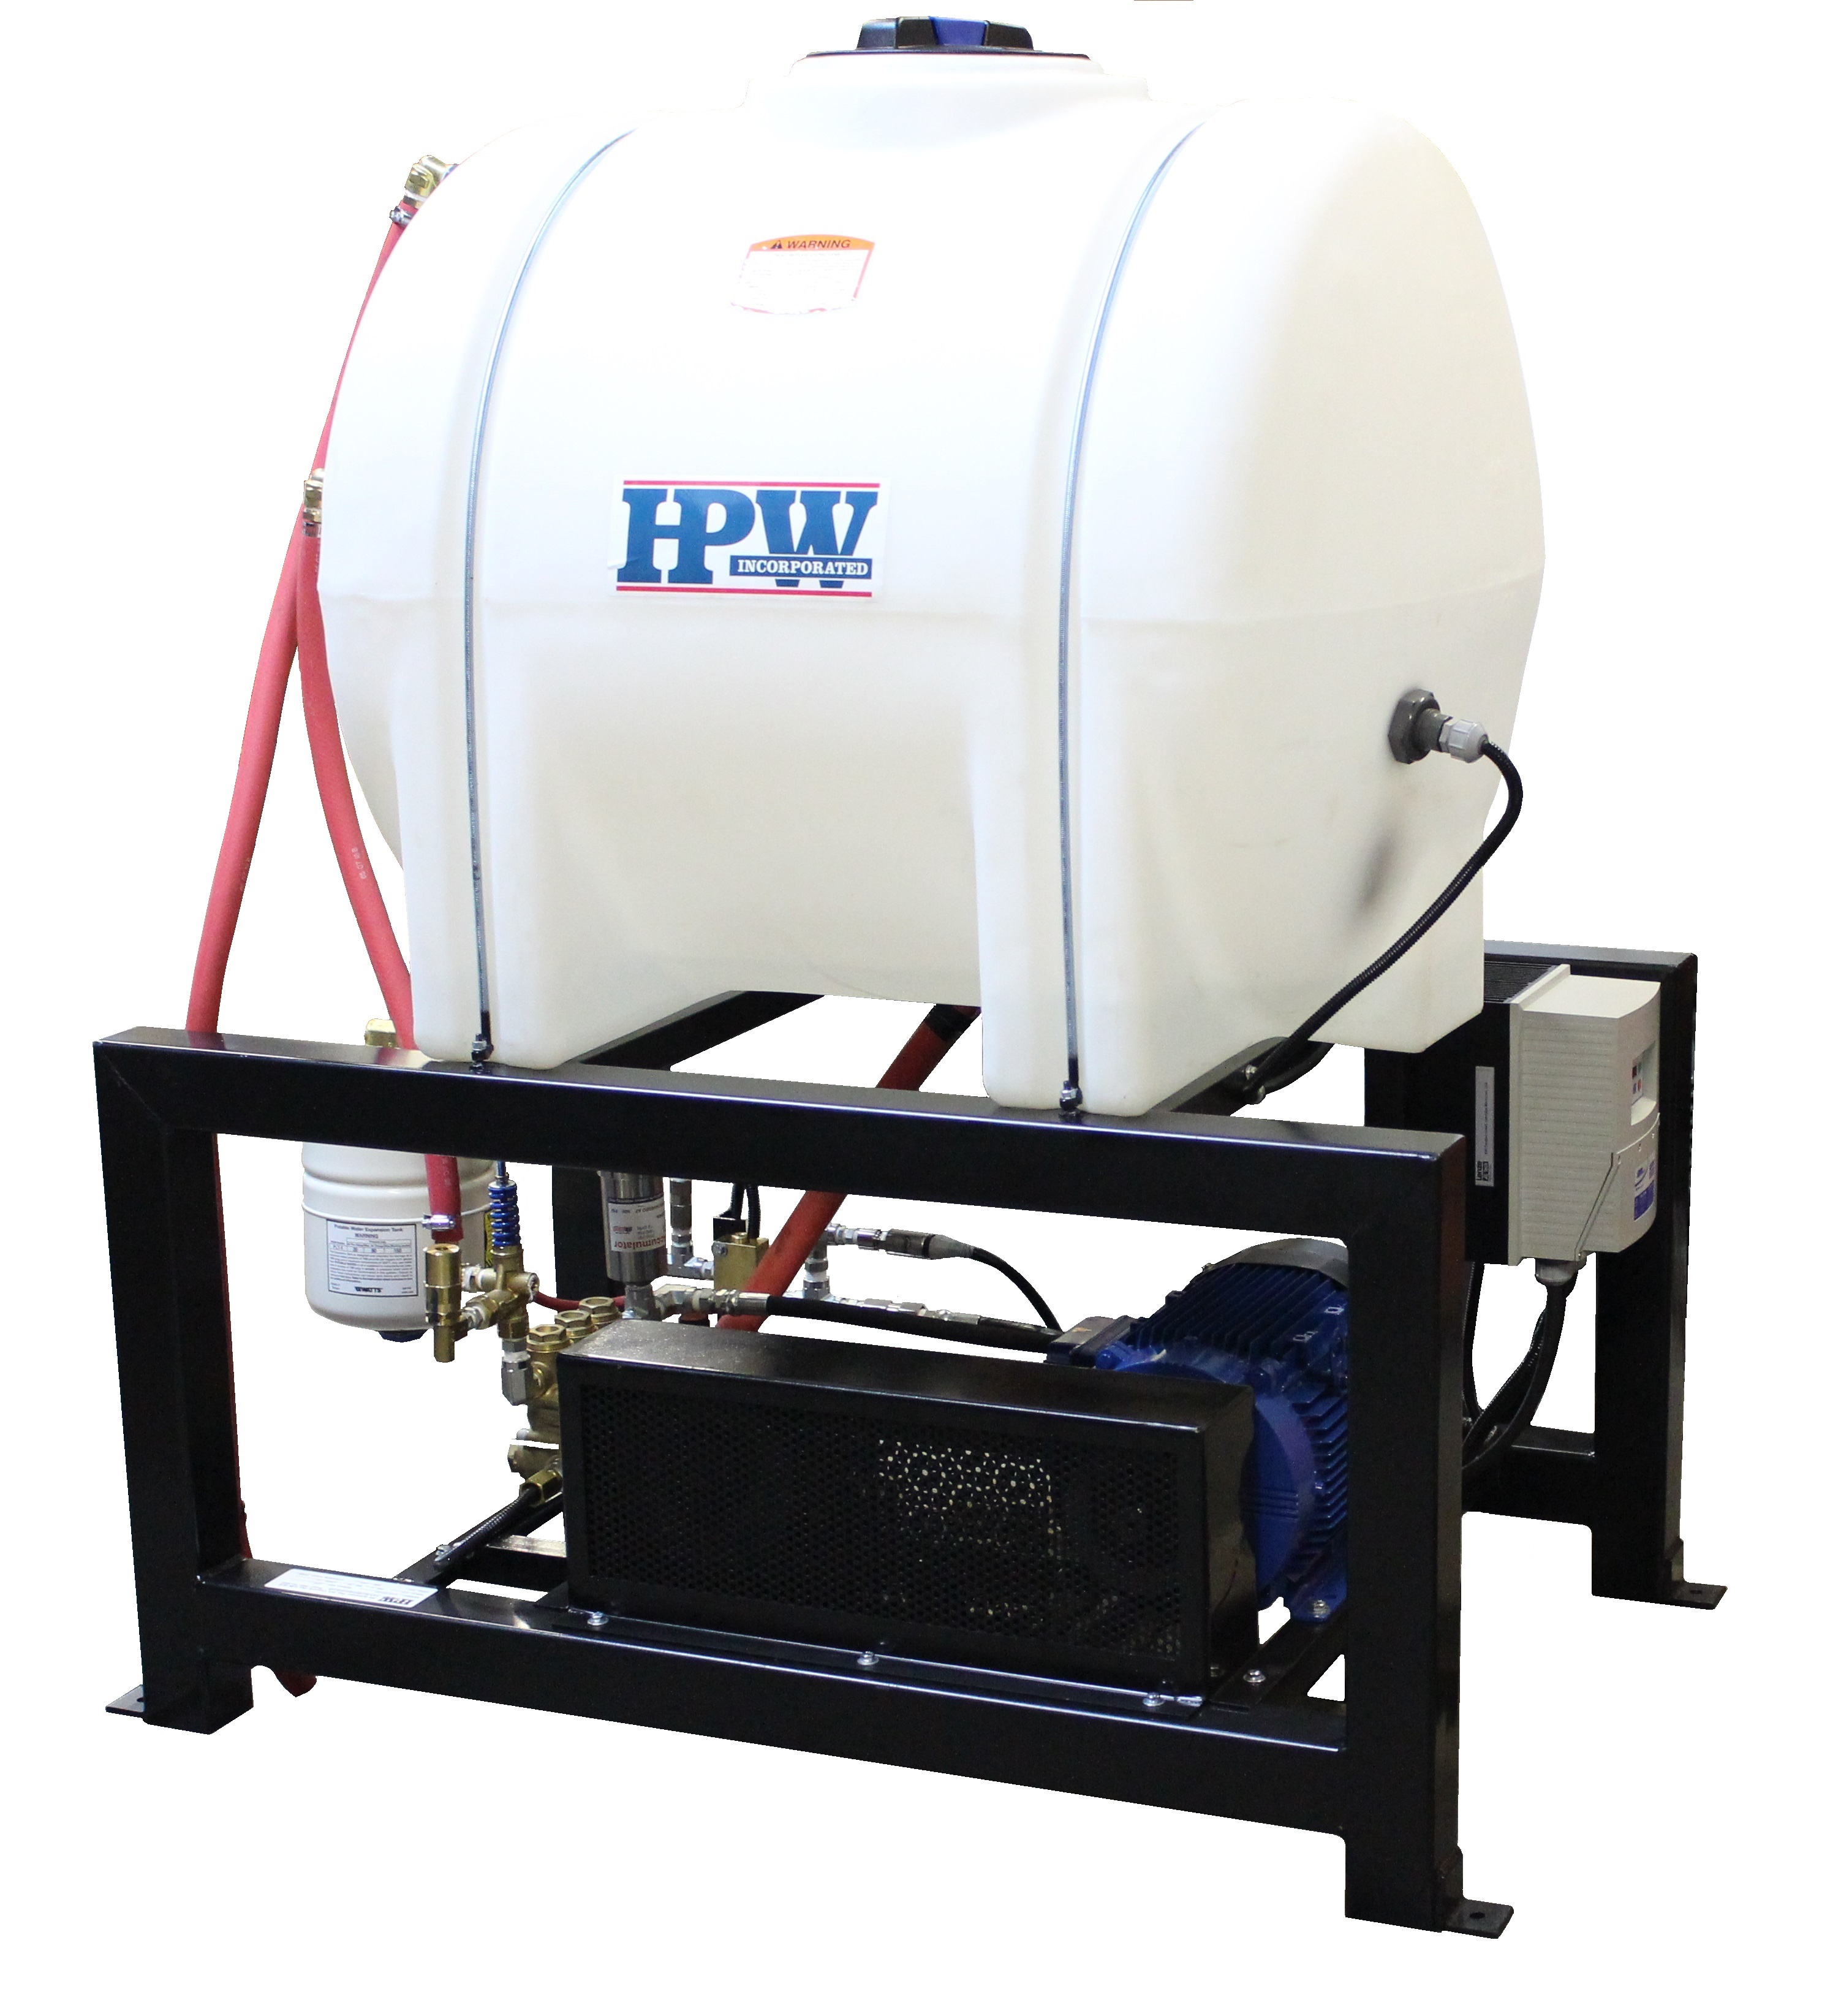 Consider Inlet Feed Tanks For Pressure Washer Equipment